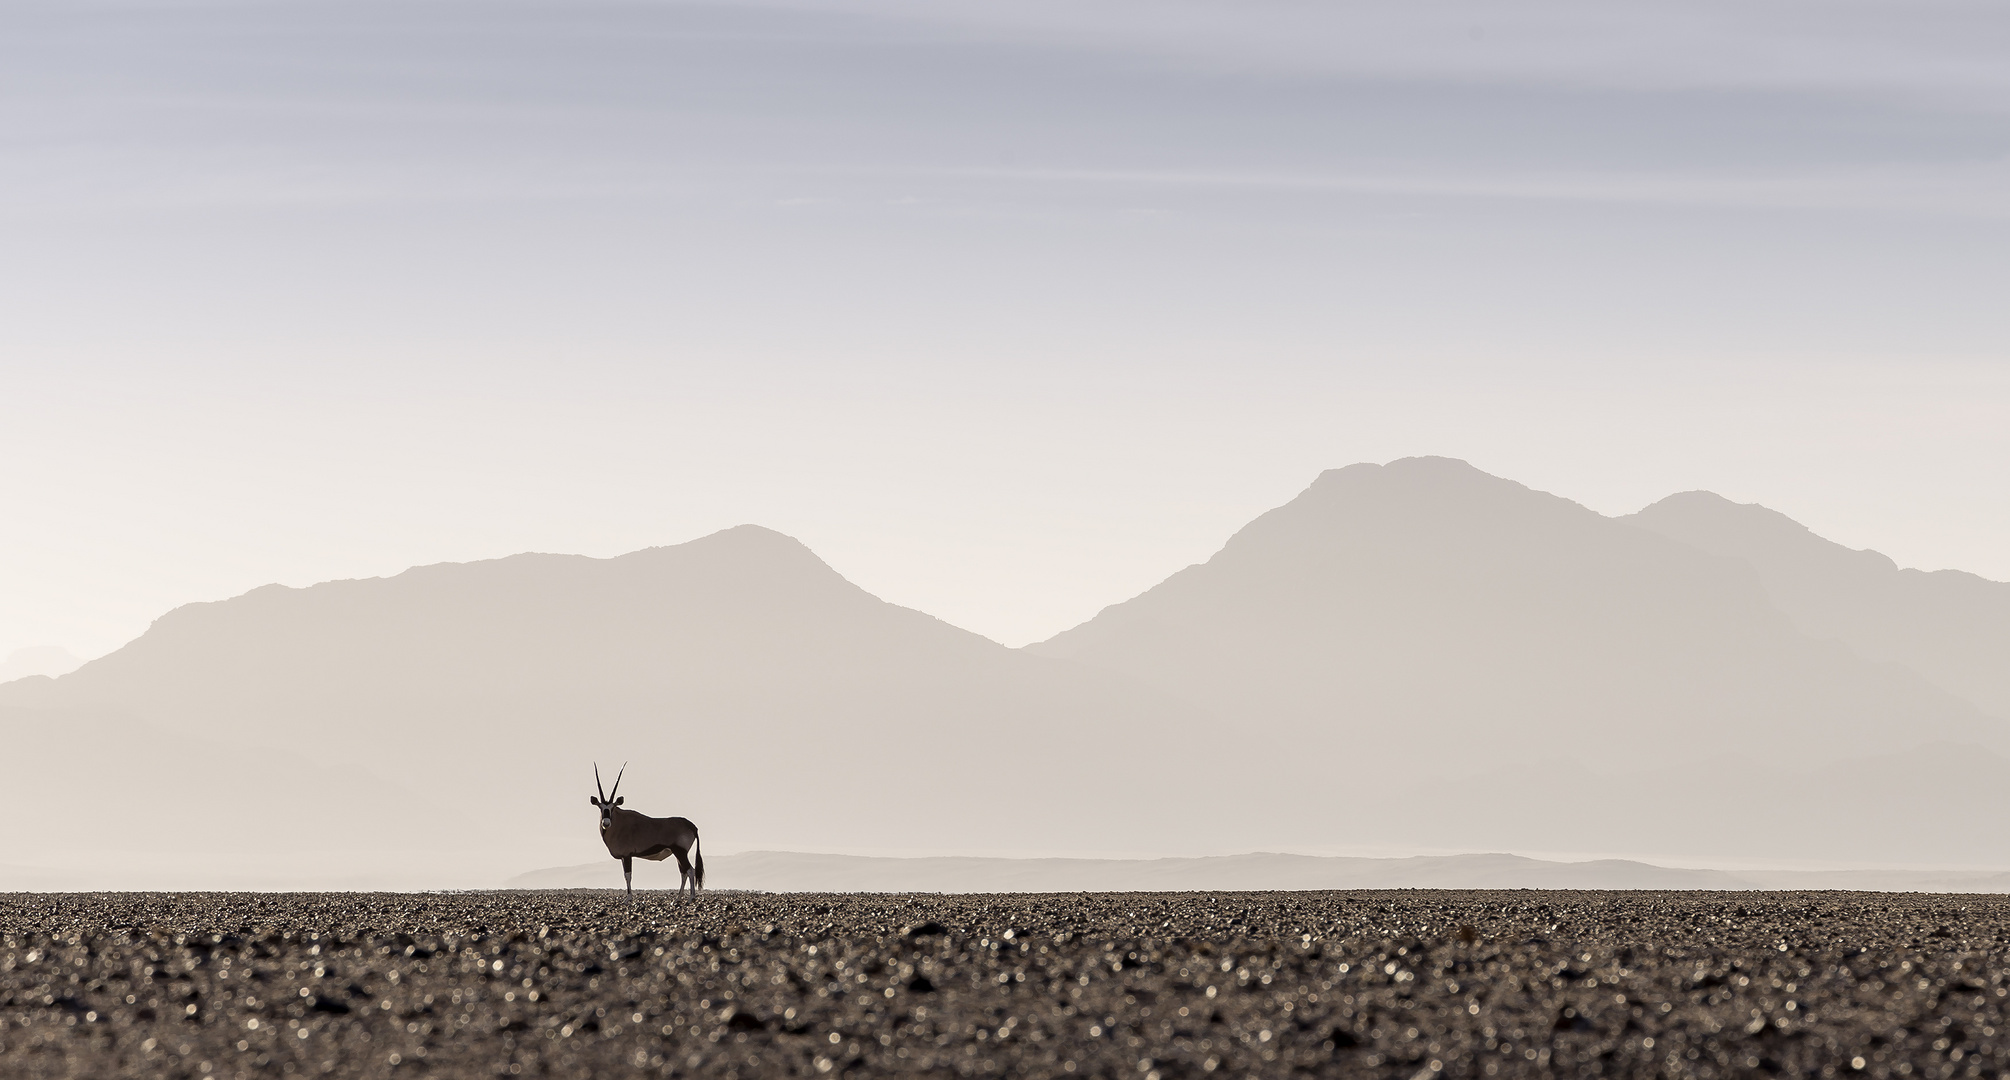 Alone with the Oryx in the Namib